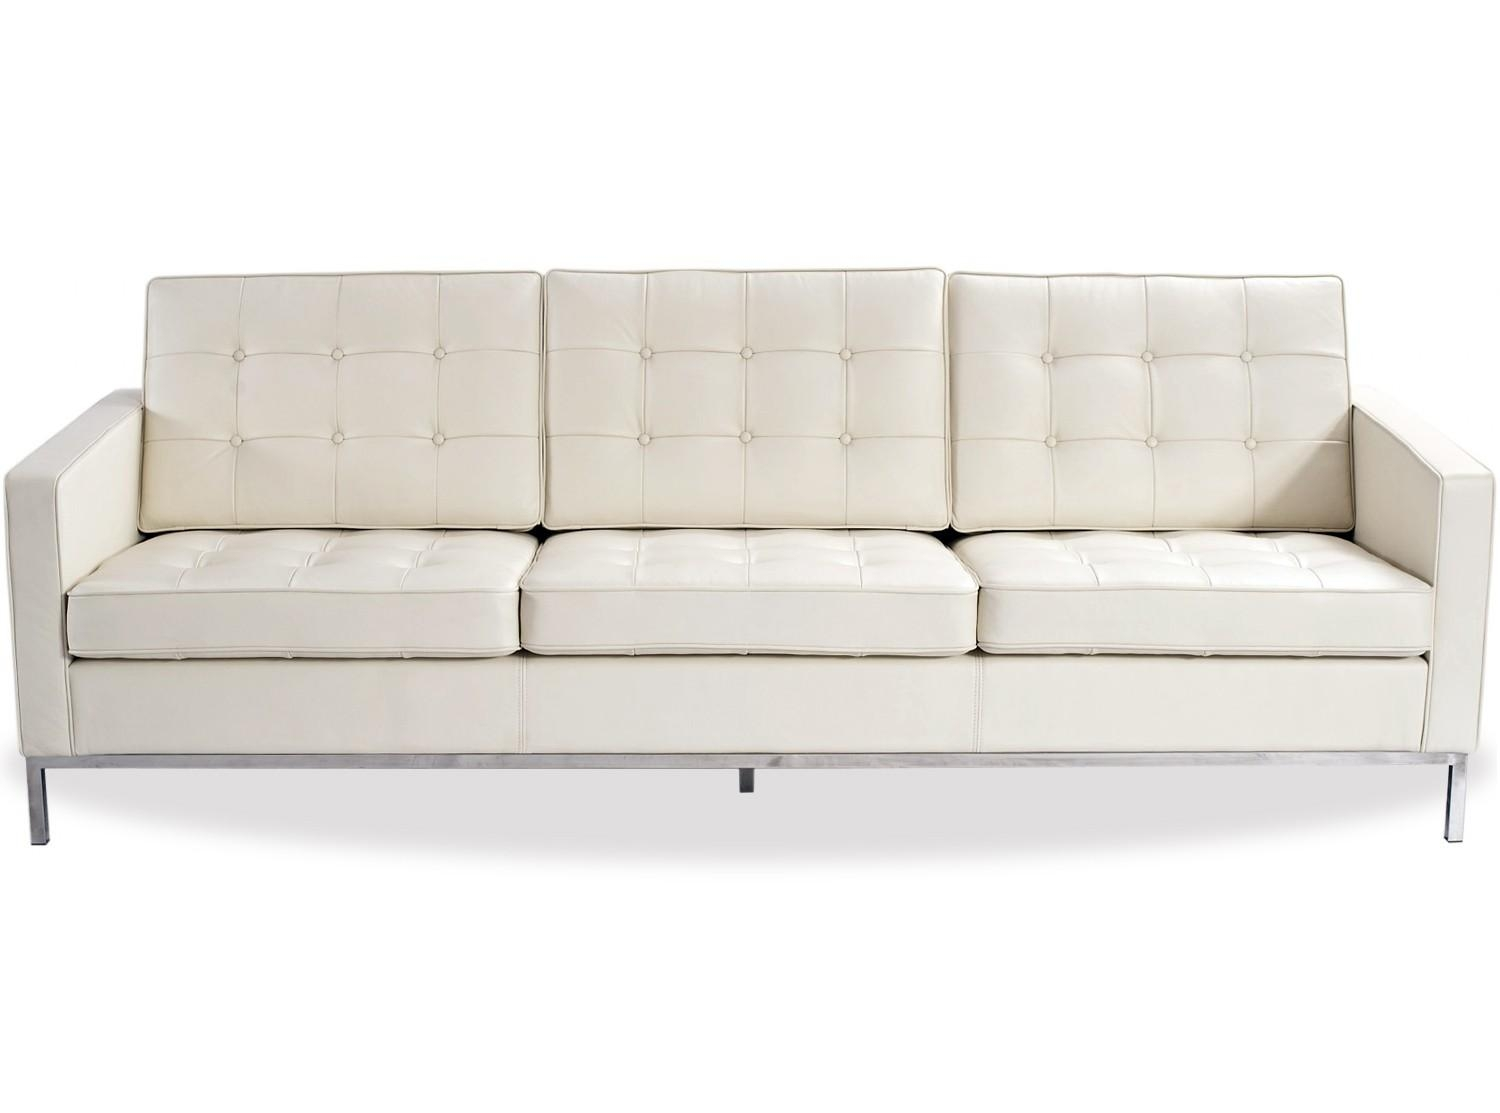 Florence Knoll Sofa Knock Off – Rs Gold Sofa Regarding Florence Leather Sofas (Image 7 of 20)